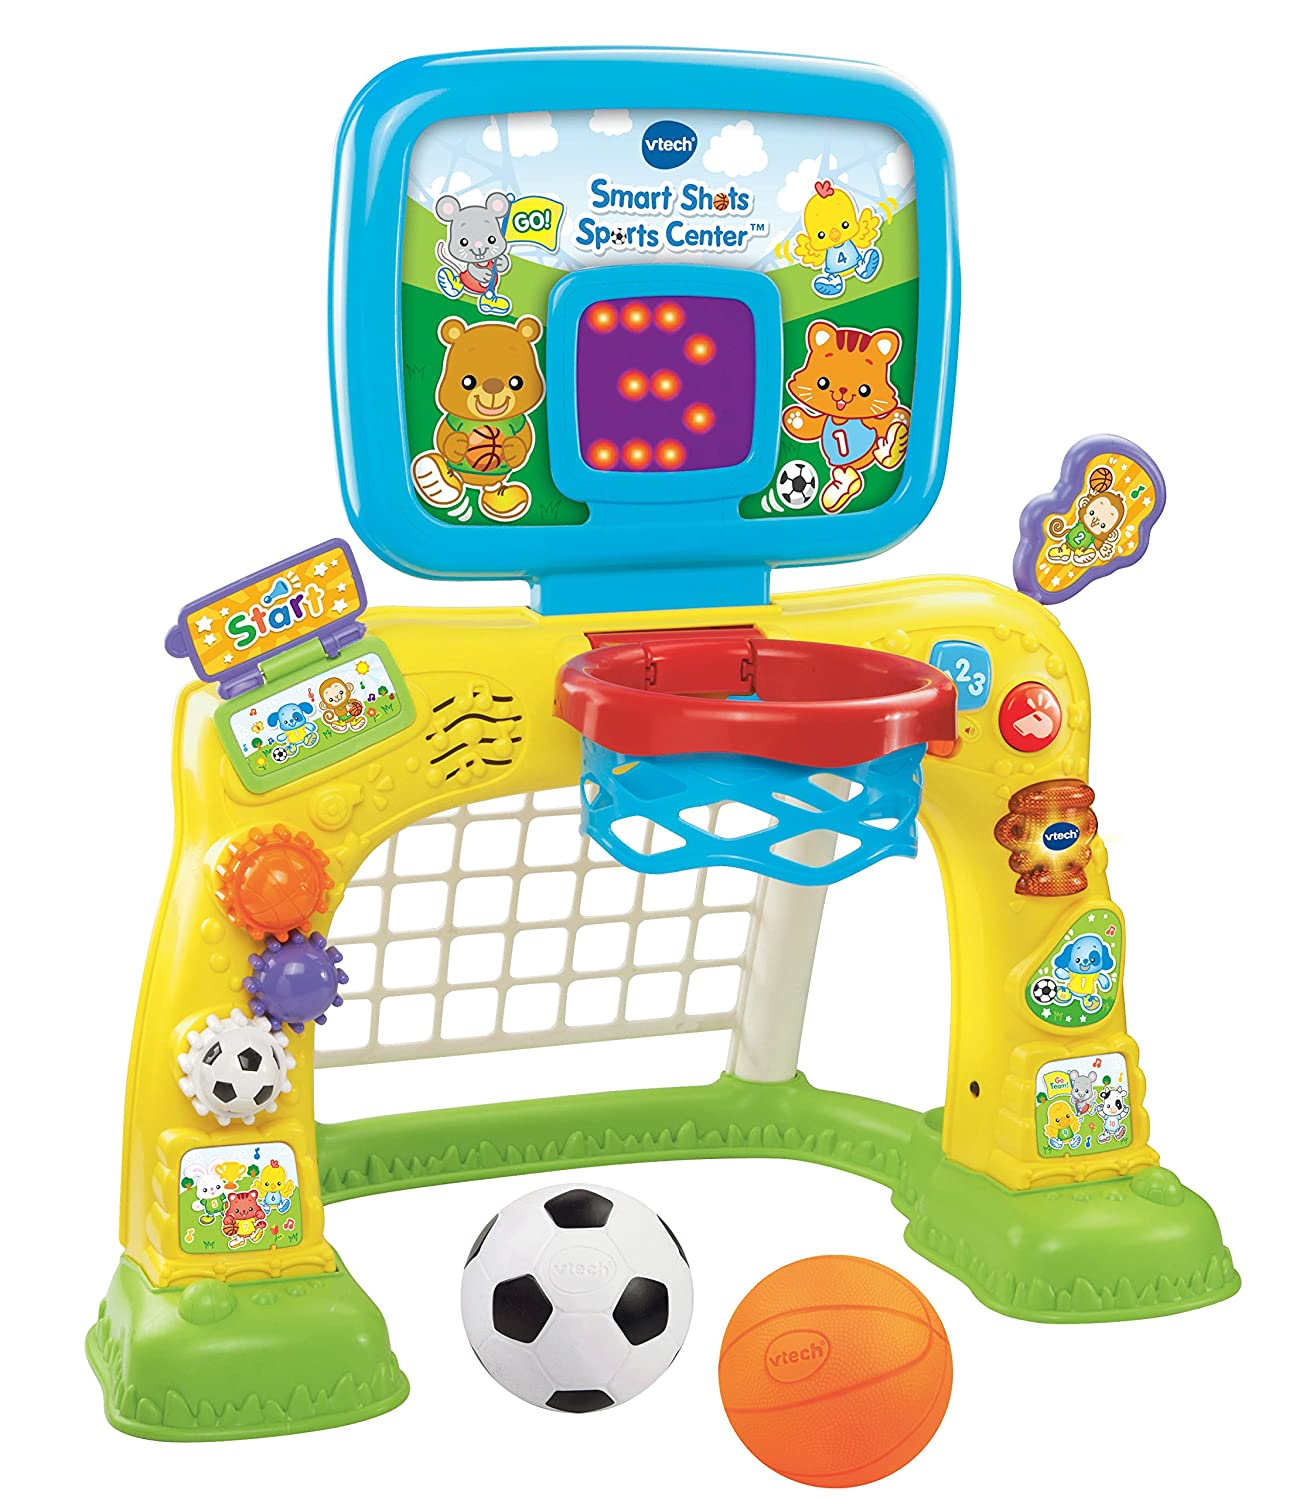 smart shots sport center - Best Christmas Gifts For 4 Year Old Boy